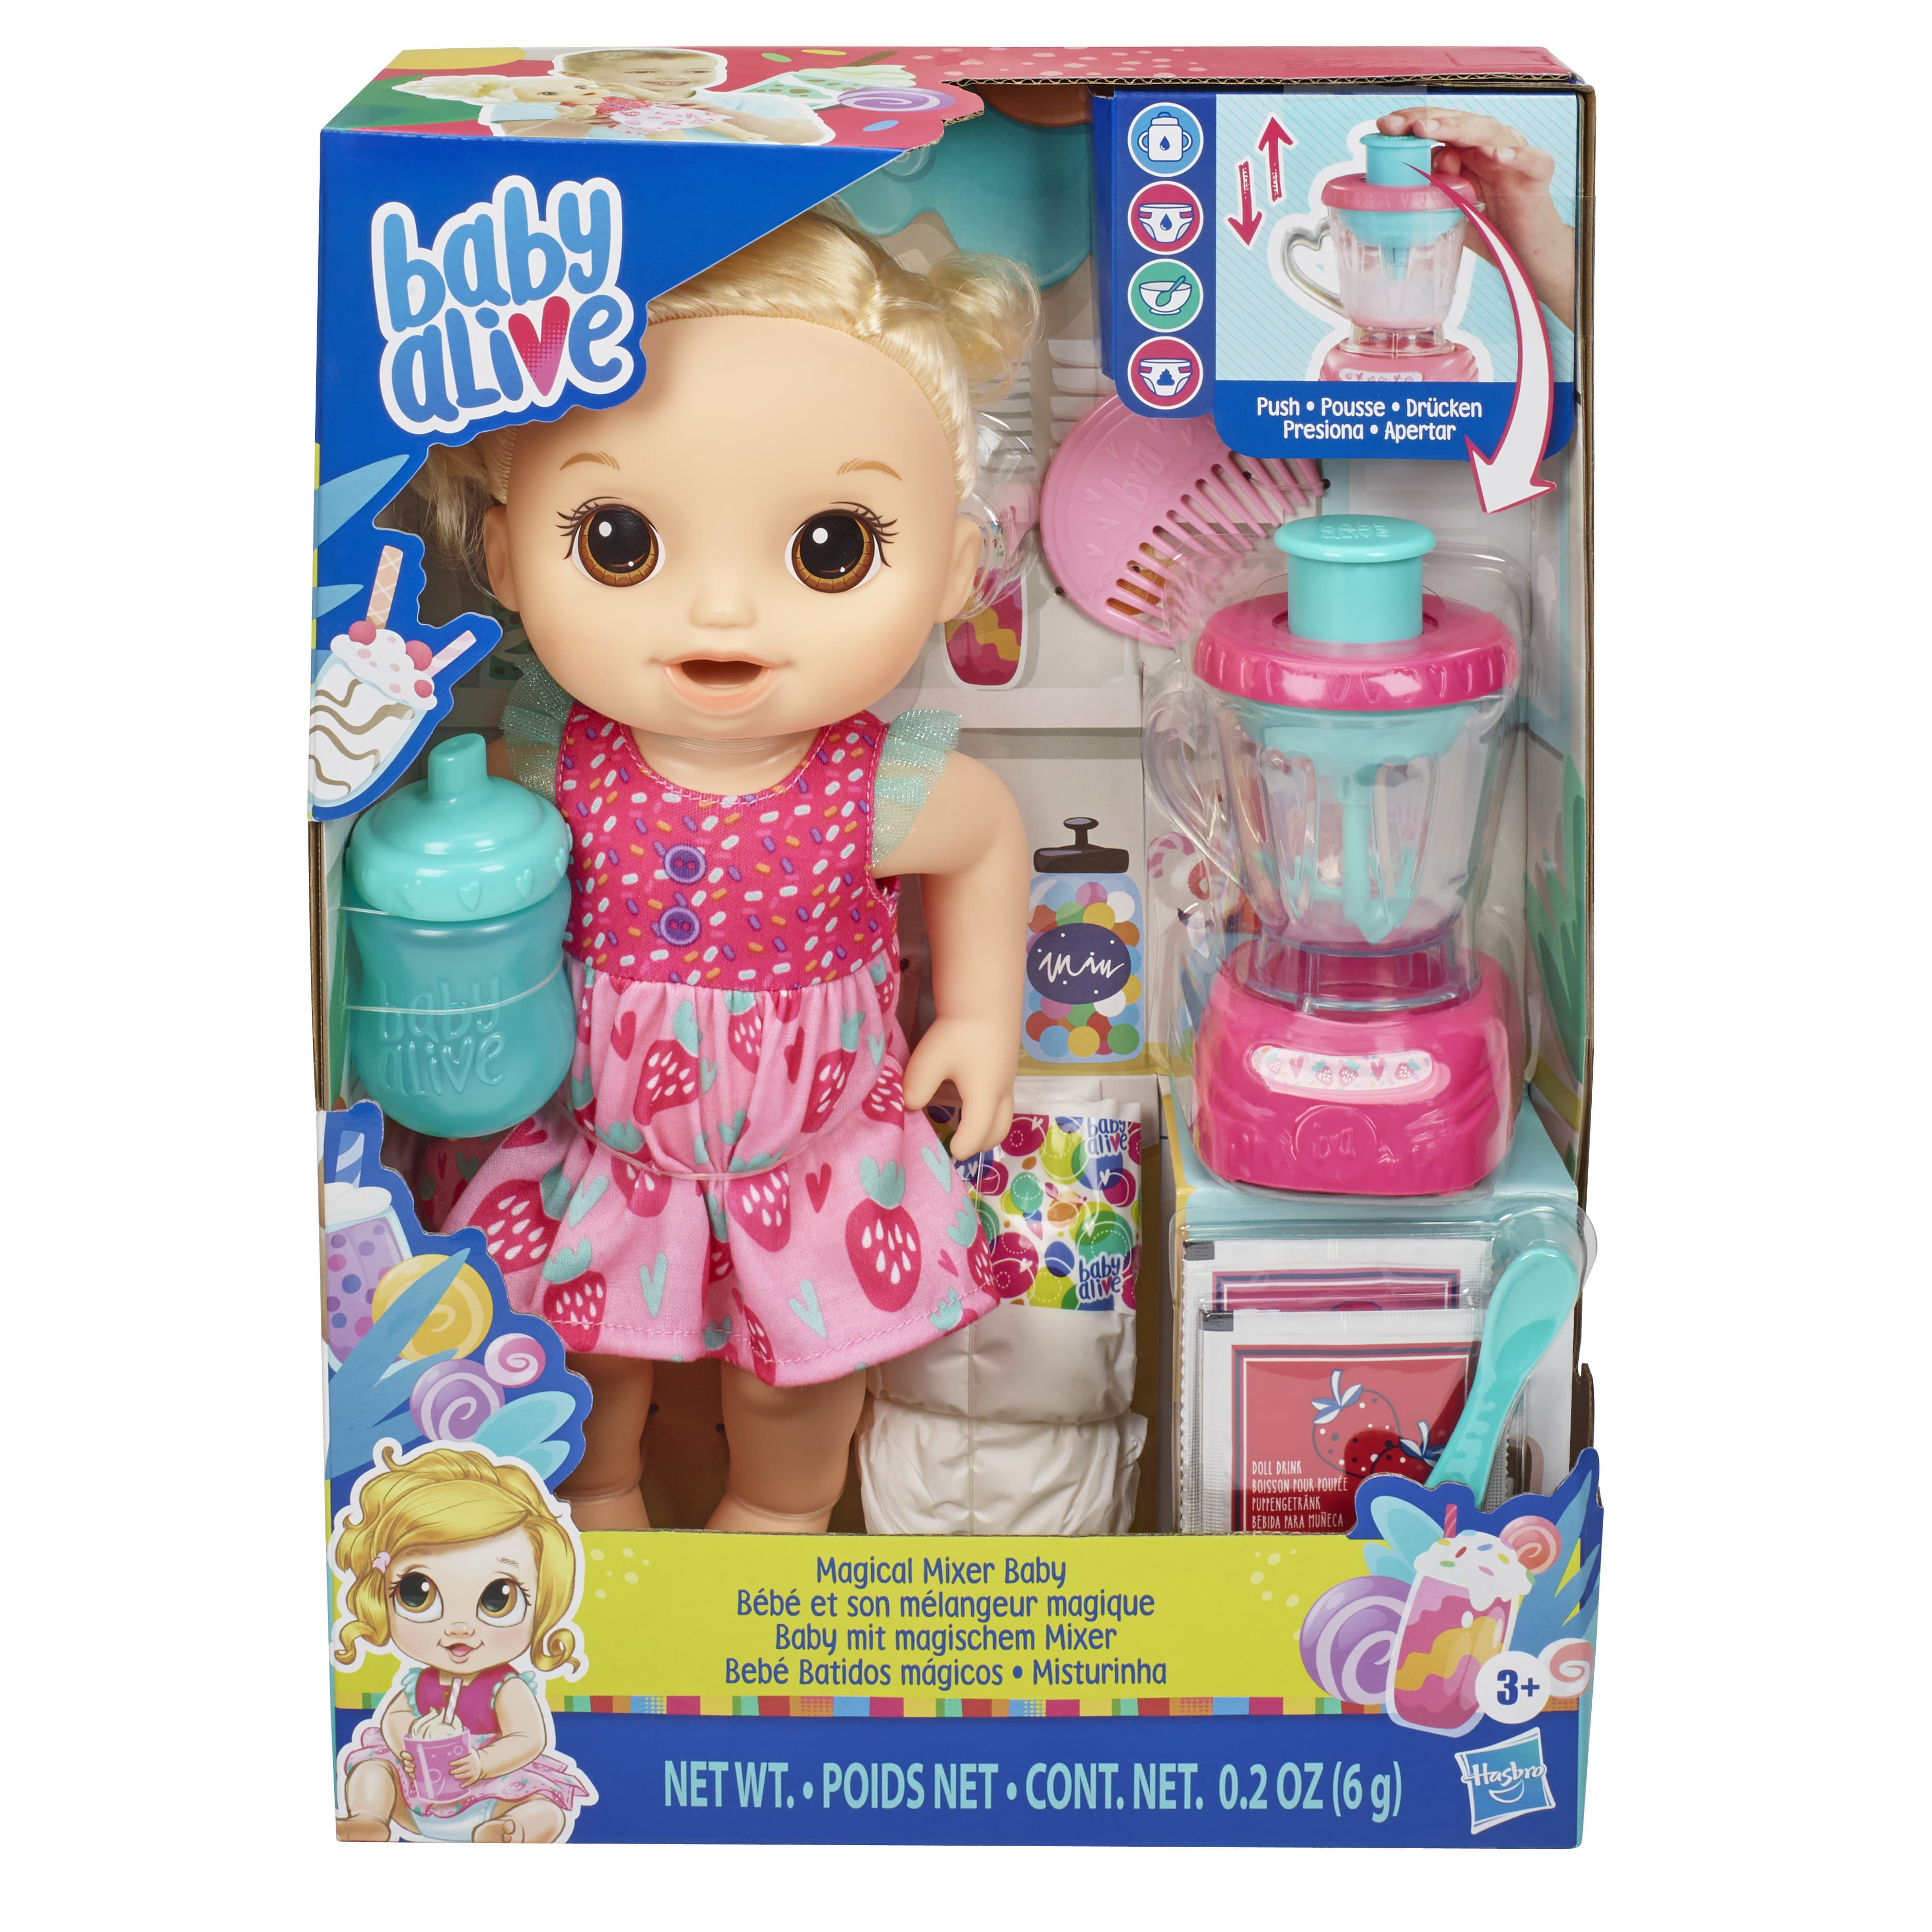 E6943 BABY ALIVE MAGICAL MIXER 1 In Pack